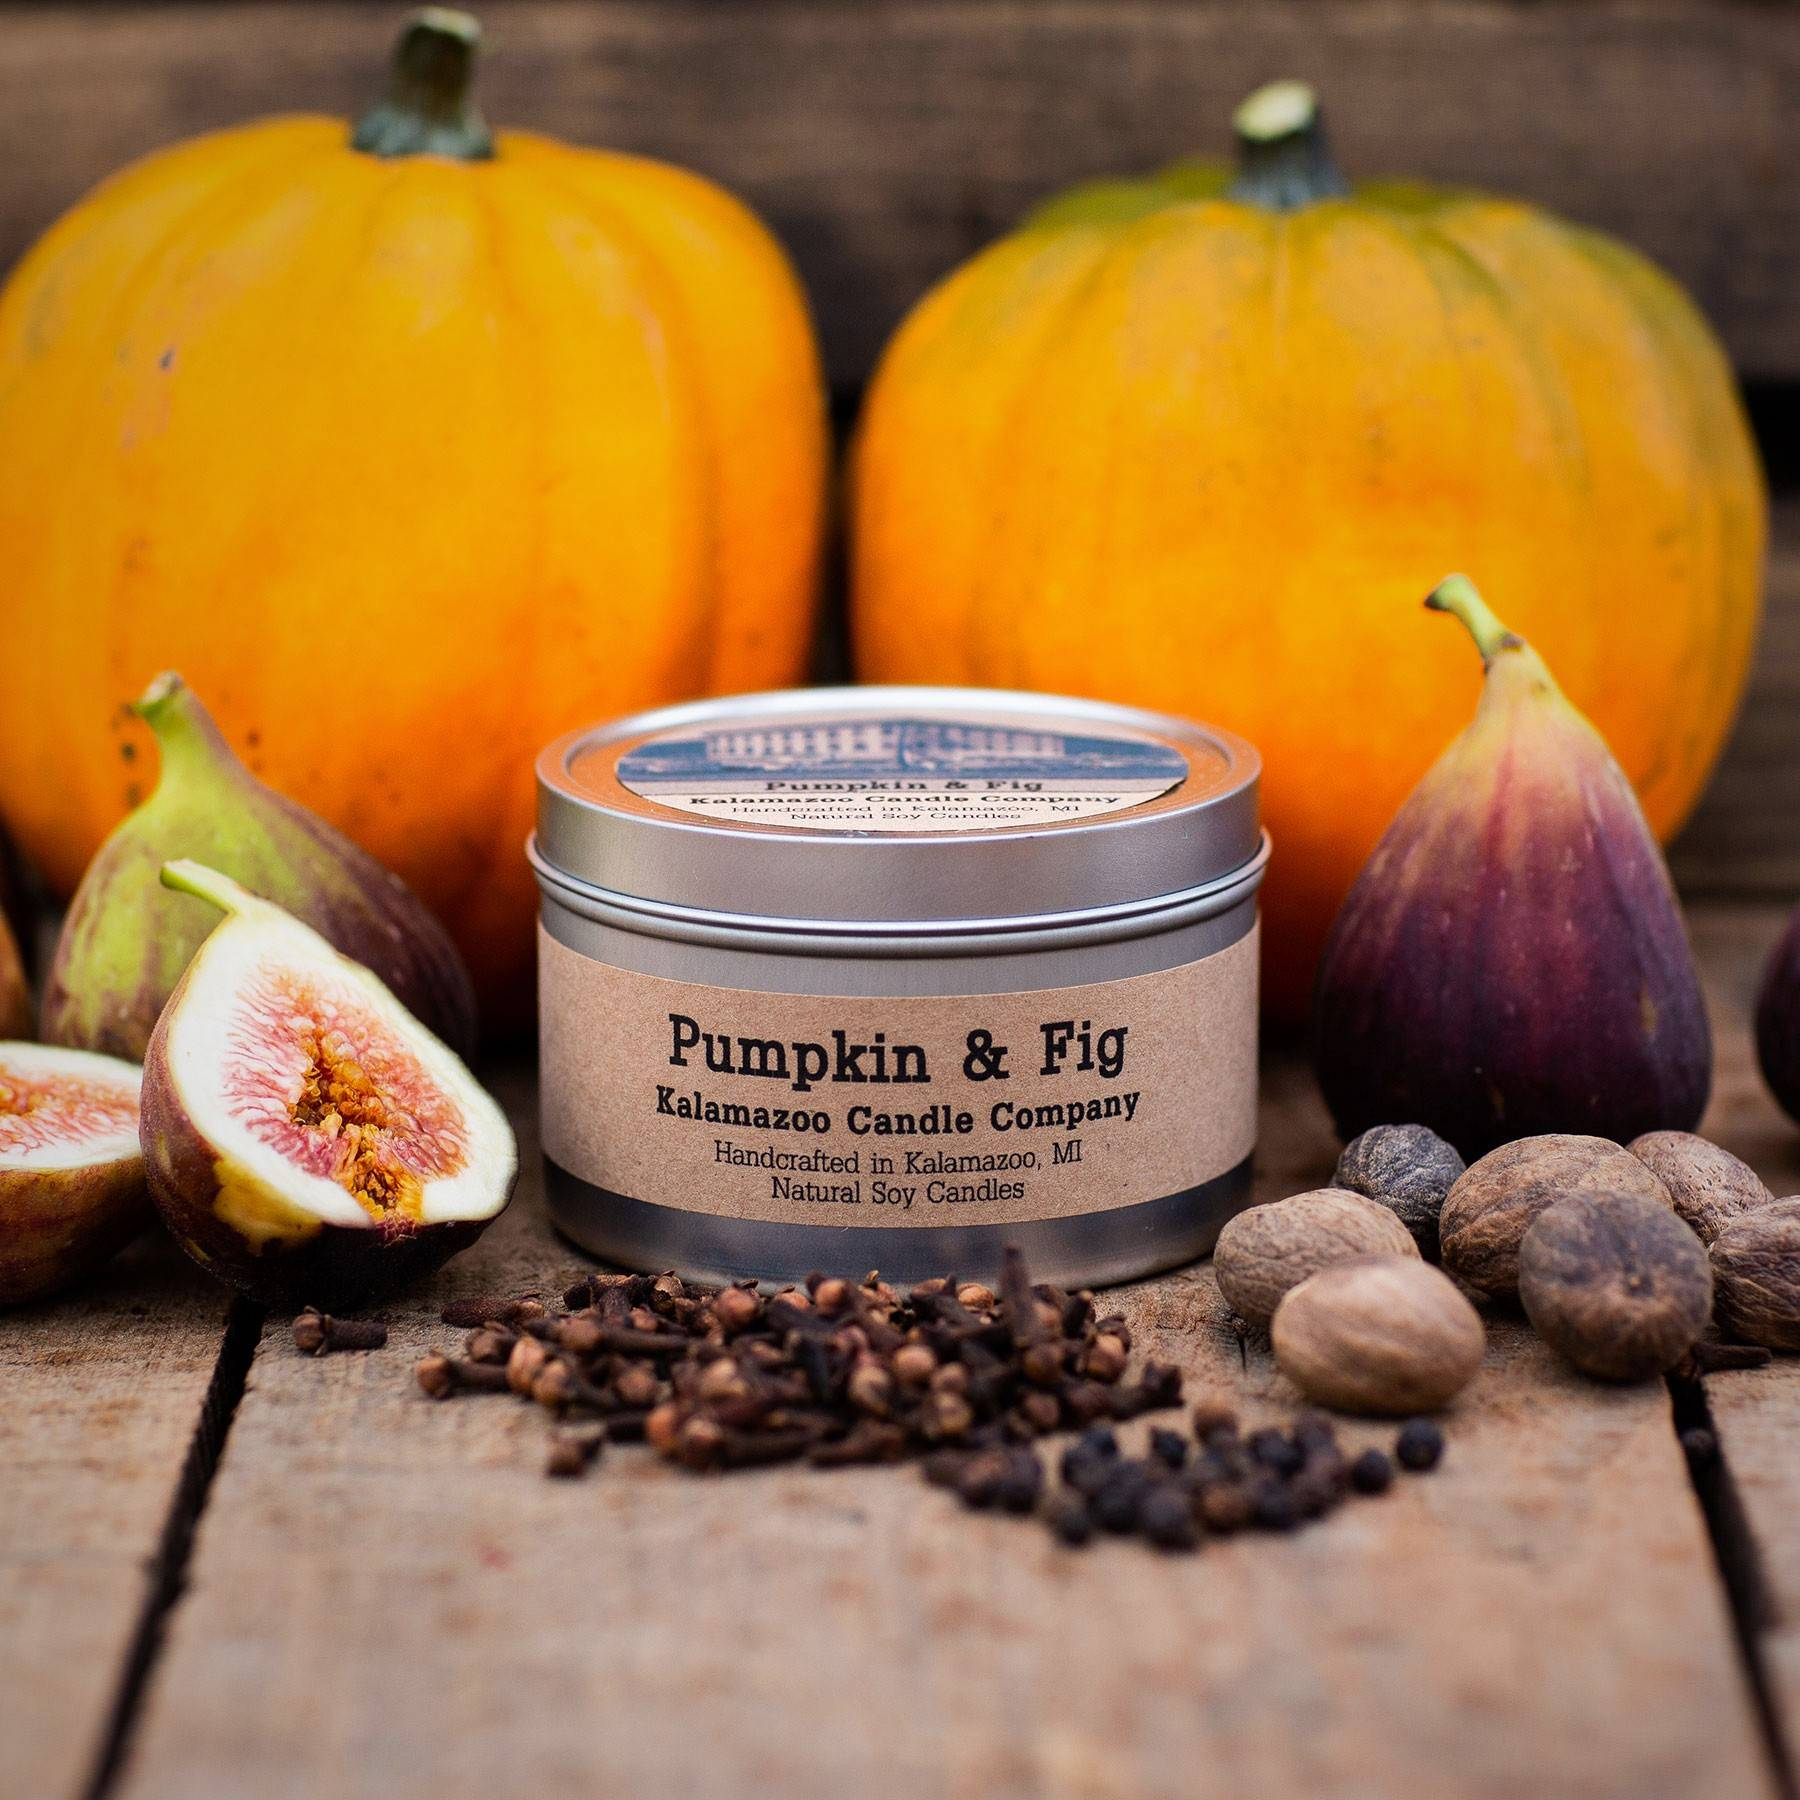 Pumpkin and Fig natural soy wax scented candle